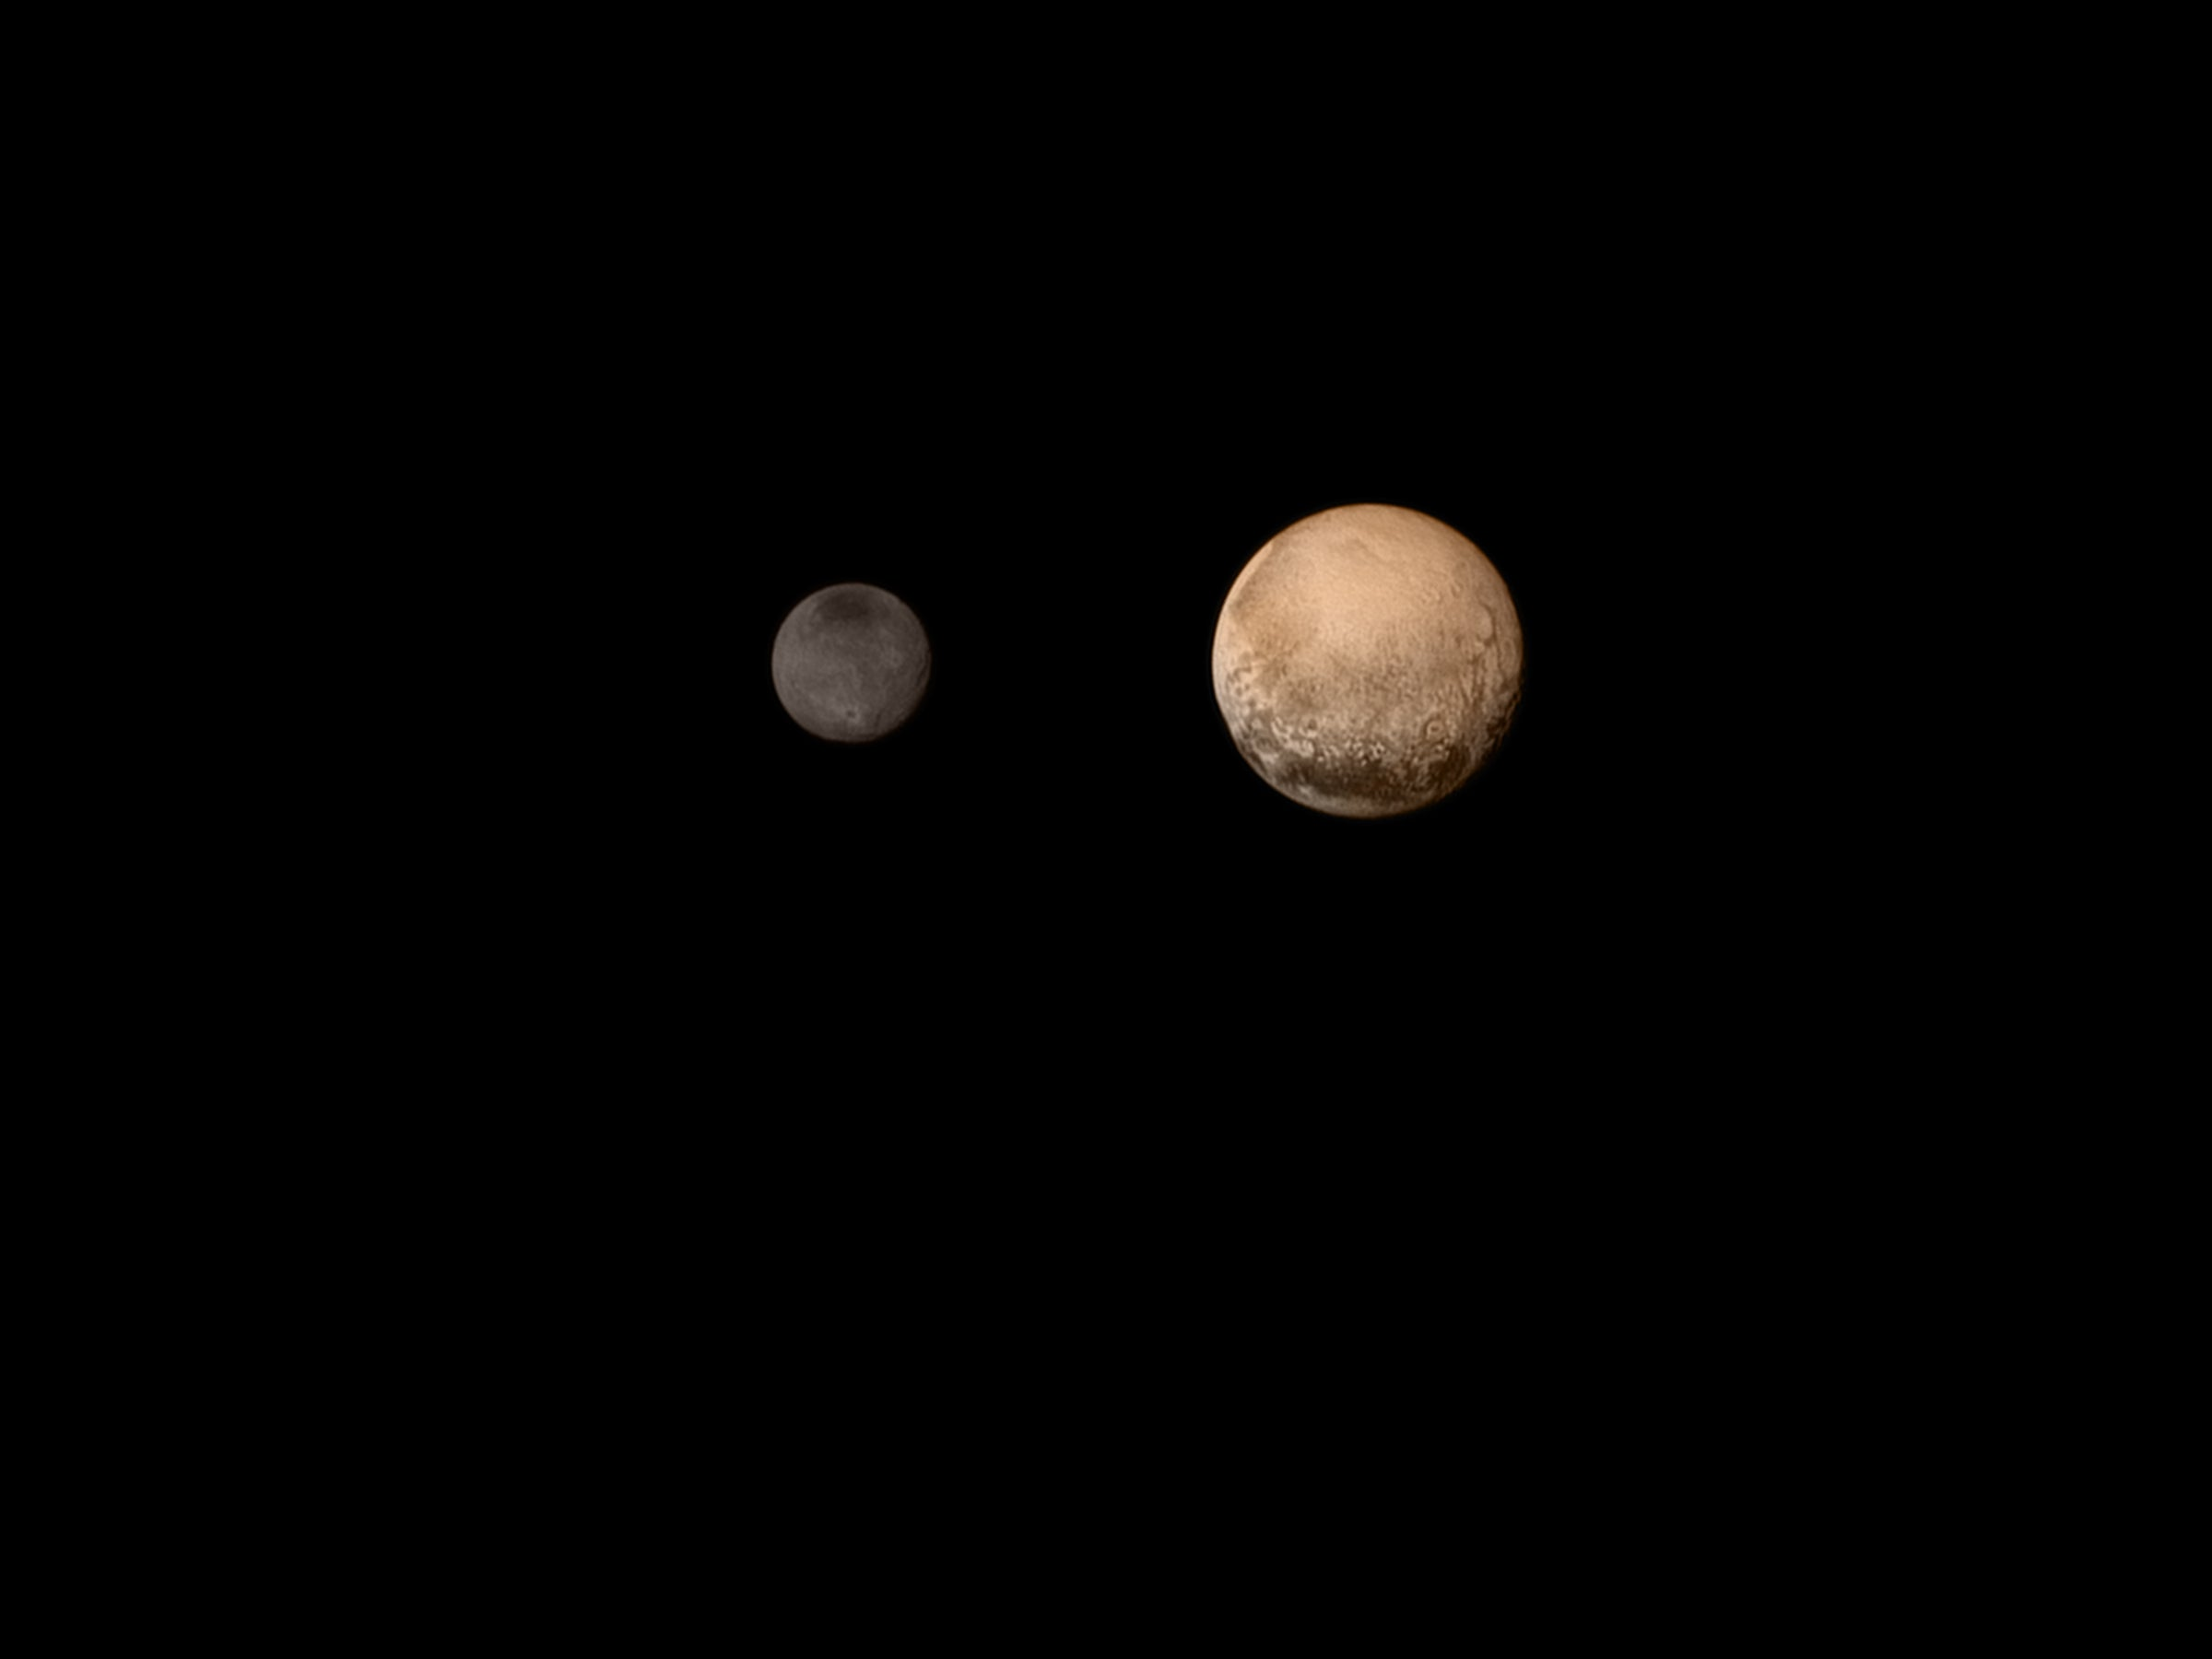 What We've Learned From Pluto So Far